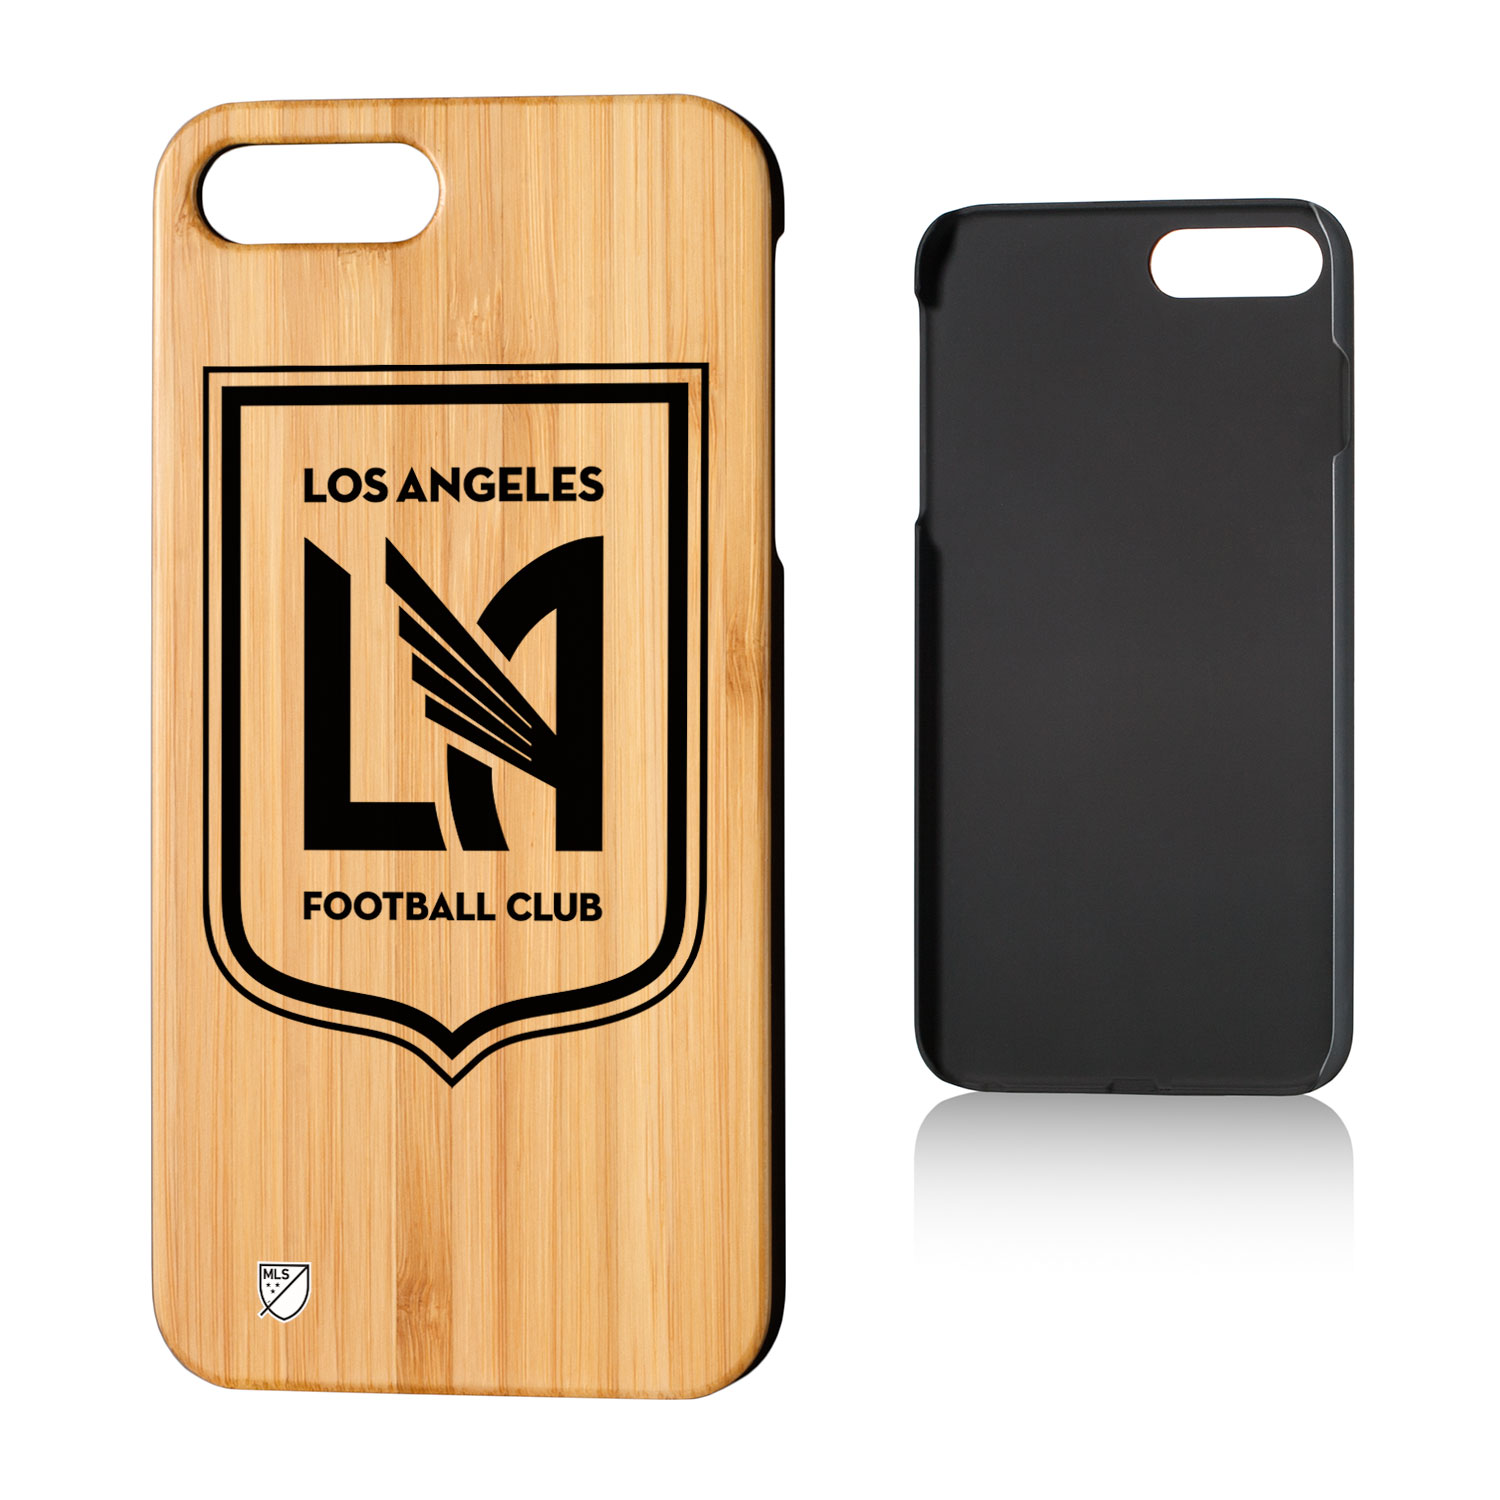 Los Angeles Footbal Club LAFC Insignia Bamboo Case for iPhone 8 Plus / 7 Plus